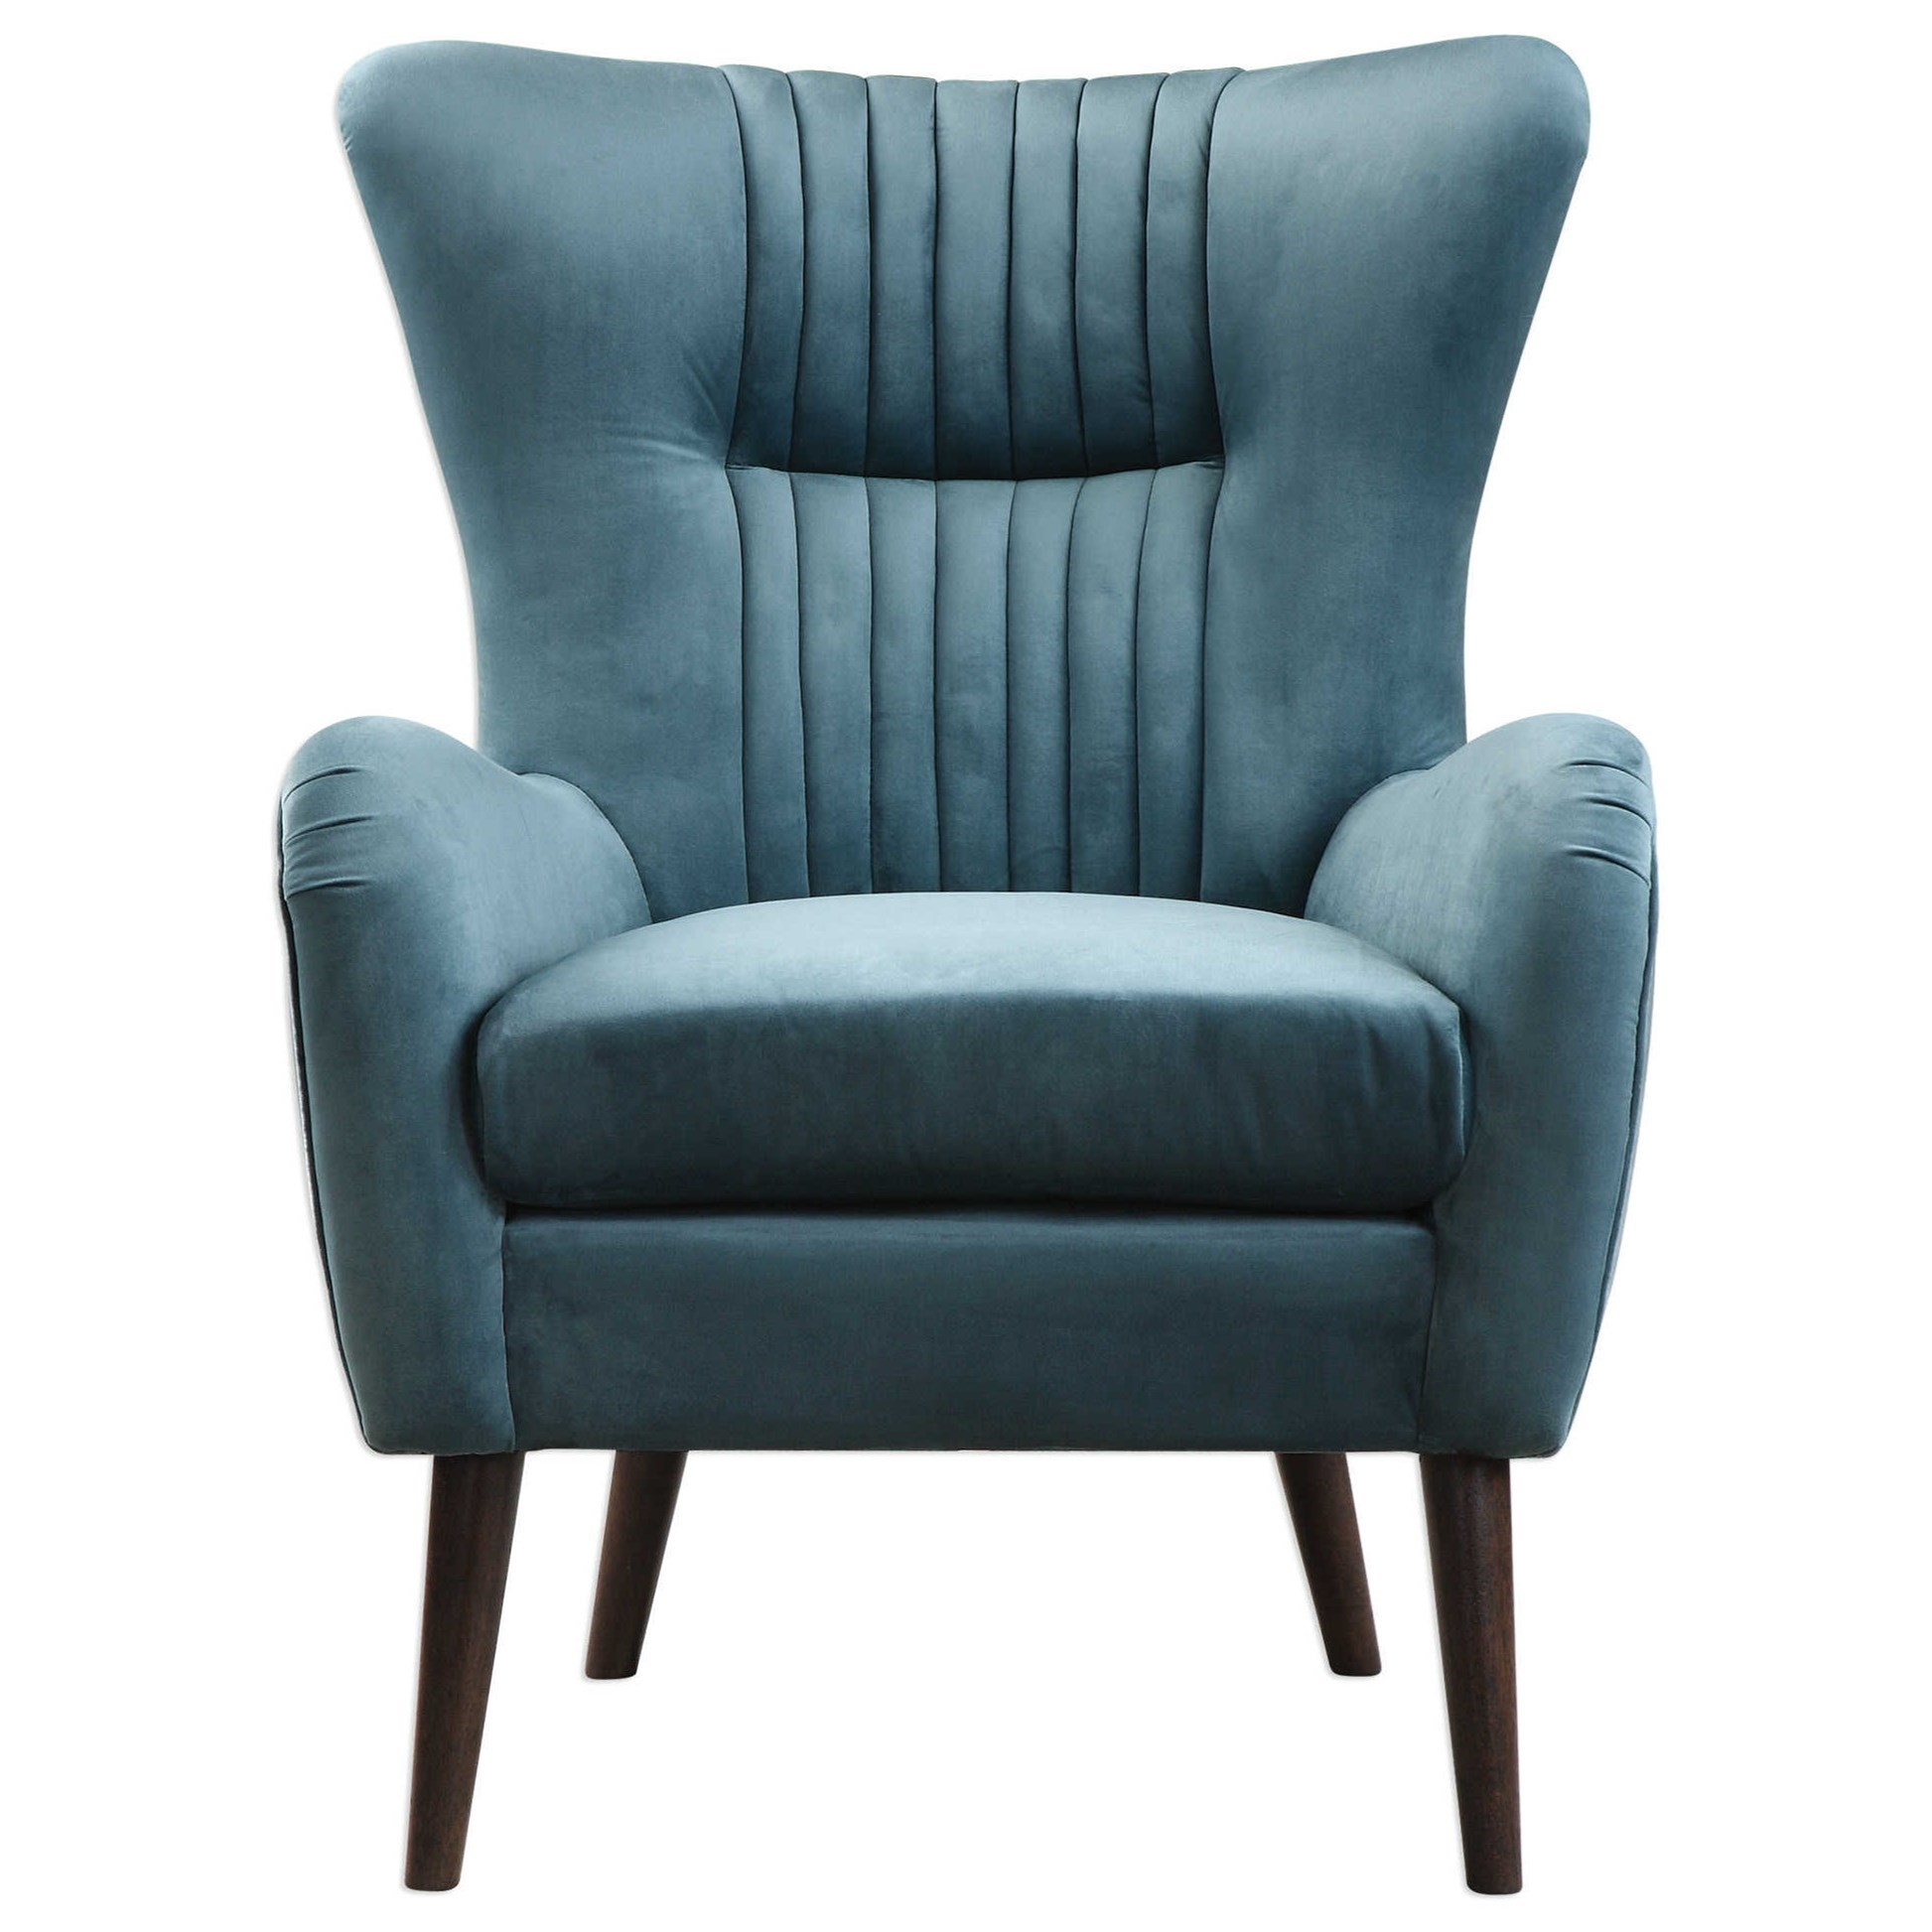 Accent Furniture - Accent Chairs Dax Mid-Century Accent Chair by Uttermost at Upper Room Home Furnishings